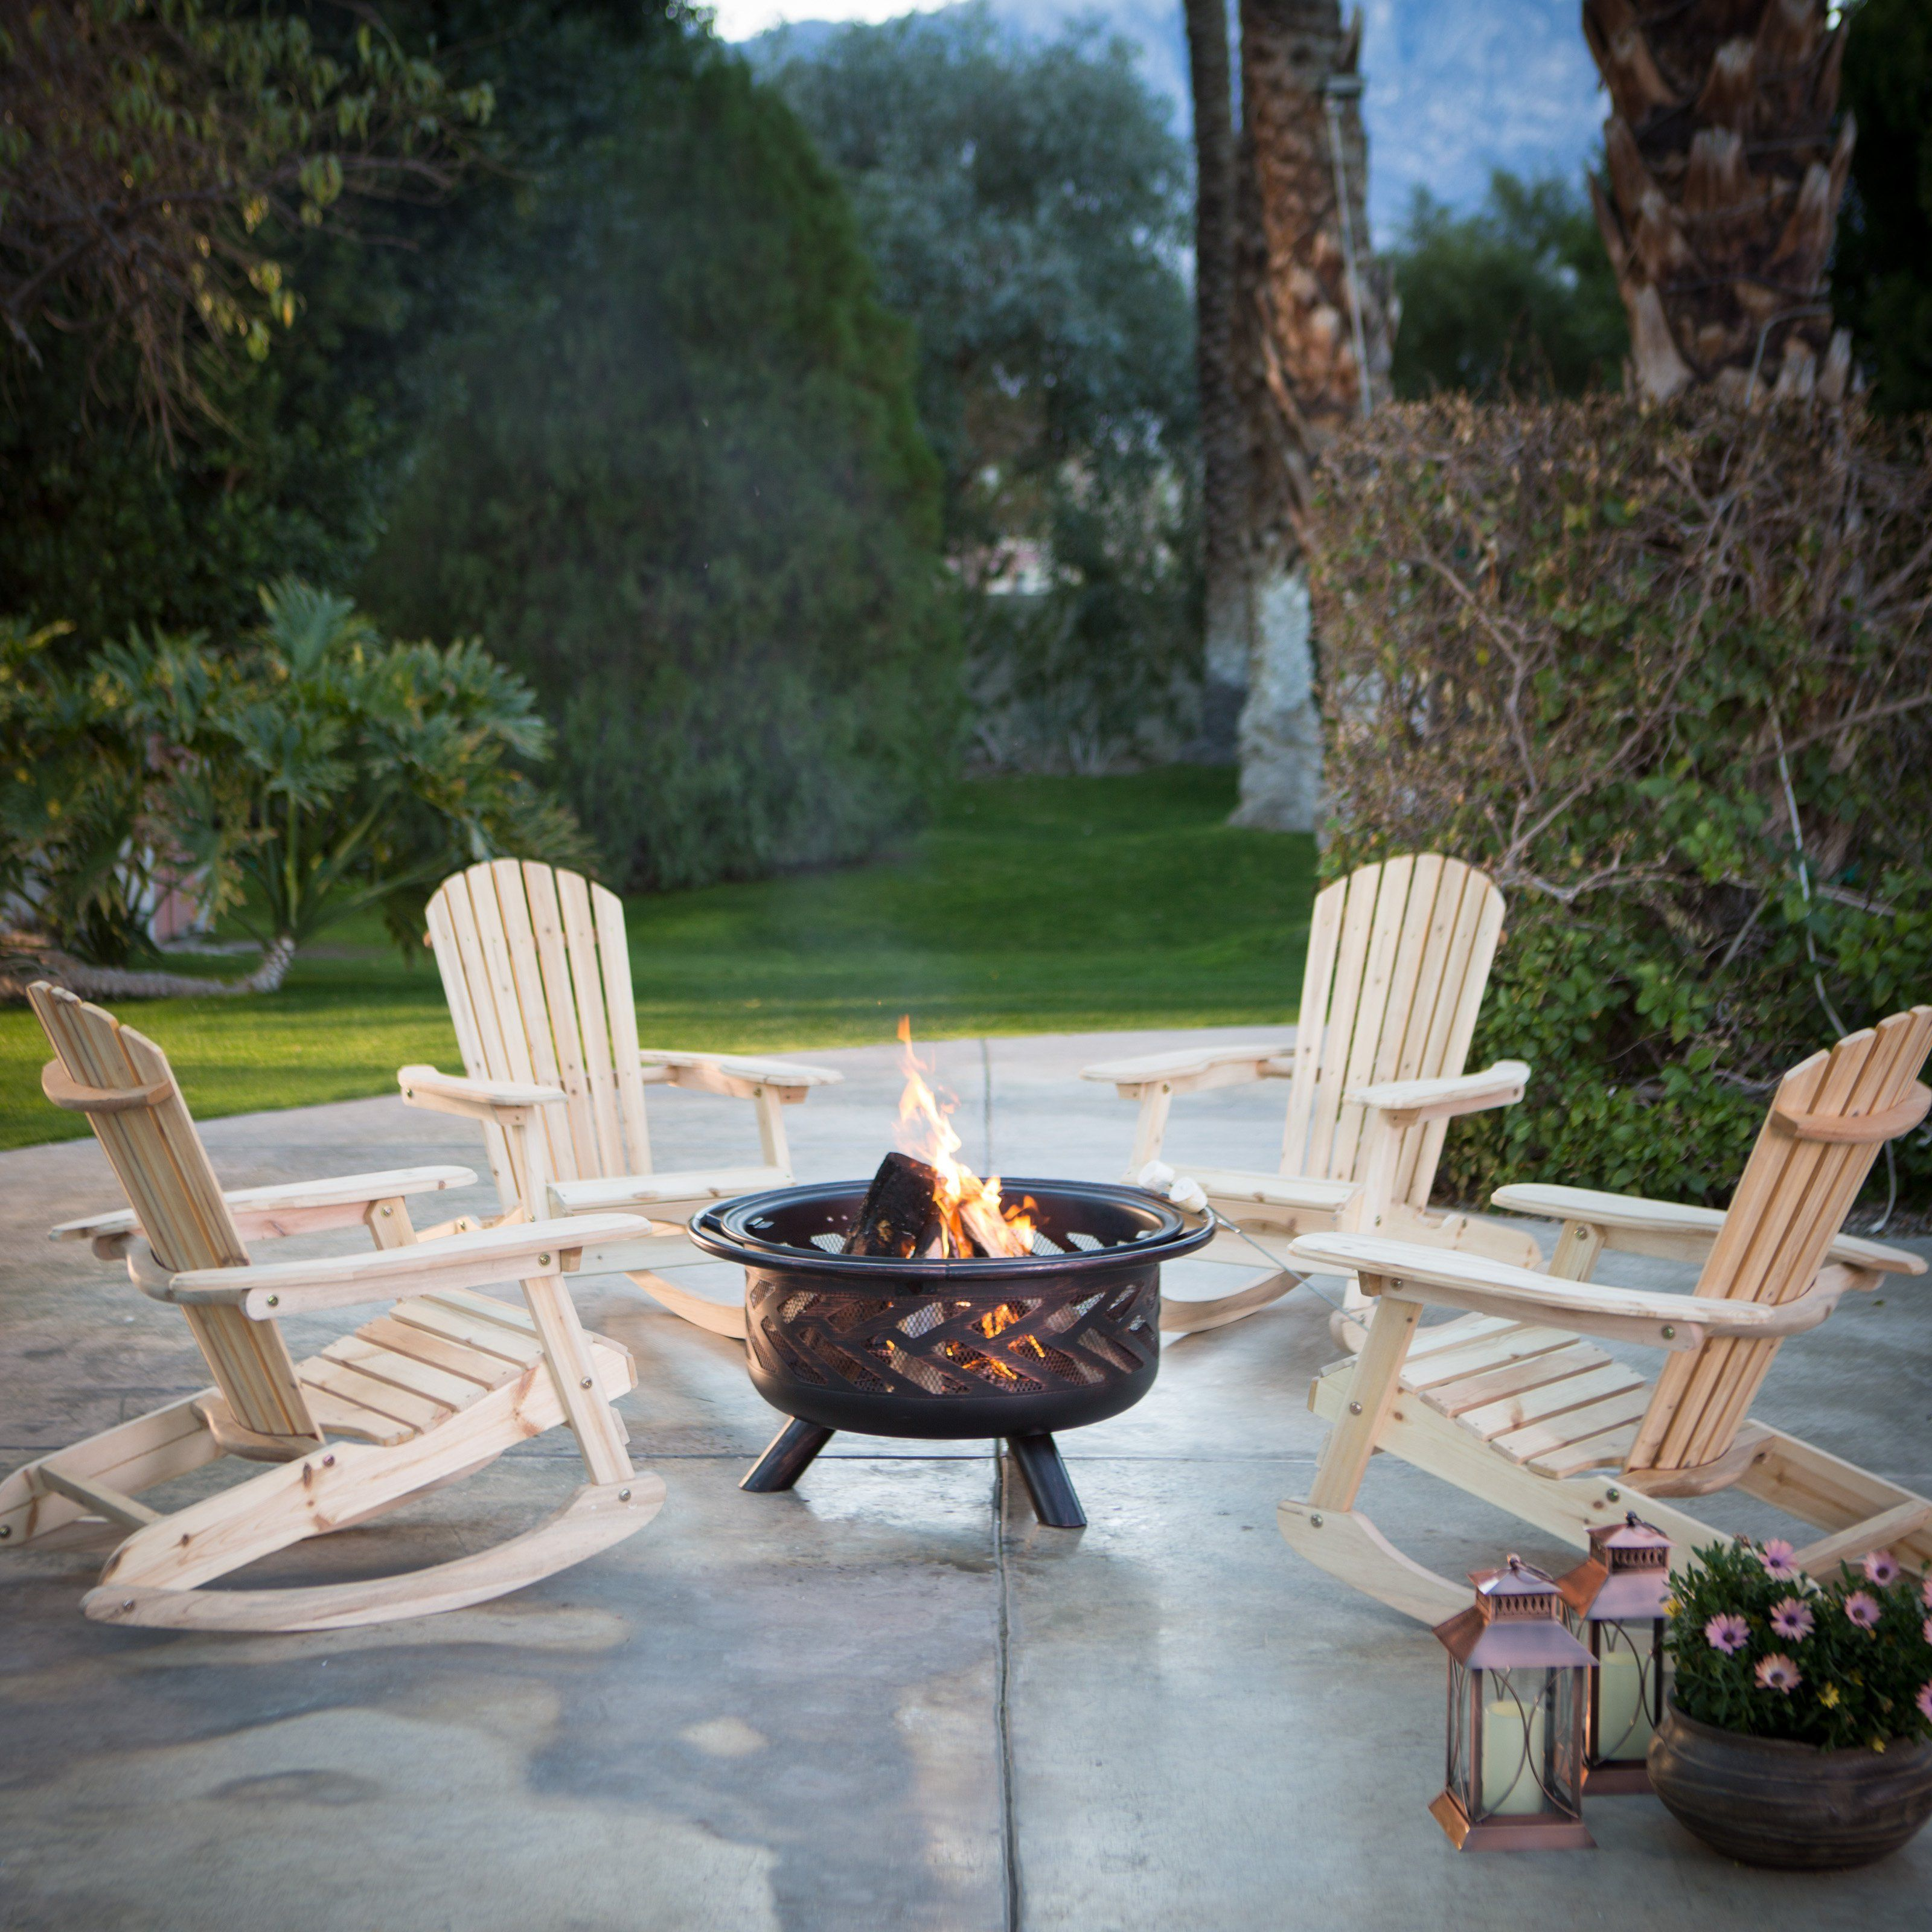 Coral Coast Adirondack Rocking Chair Fire Pit Chat Set